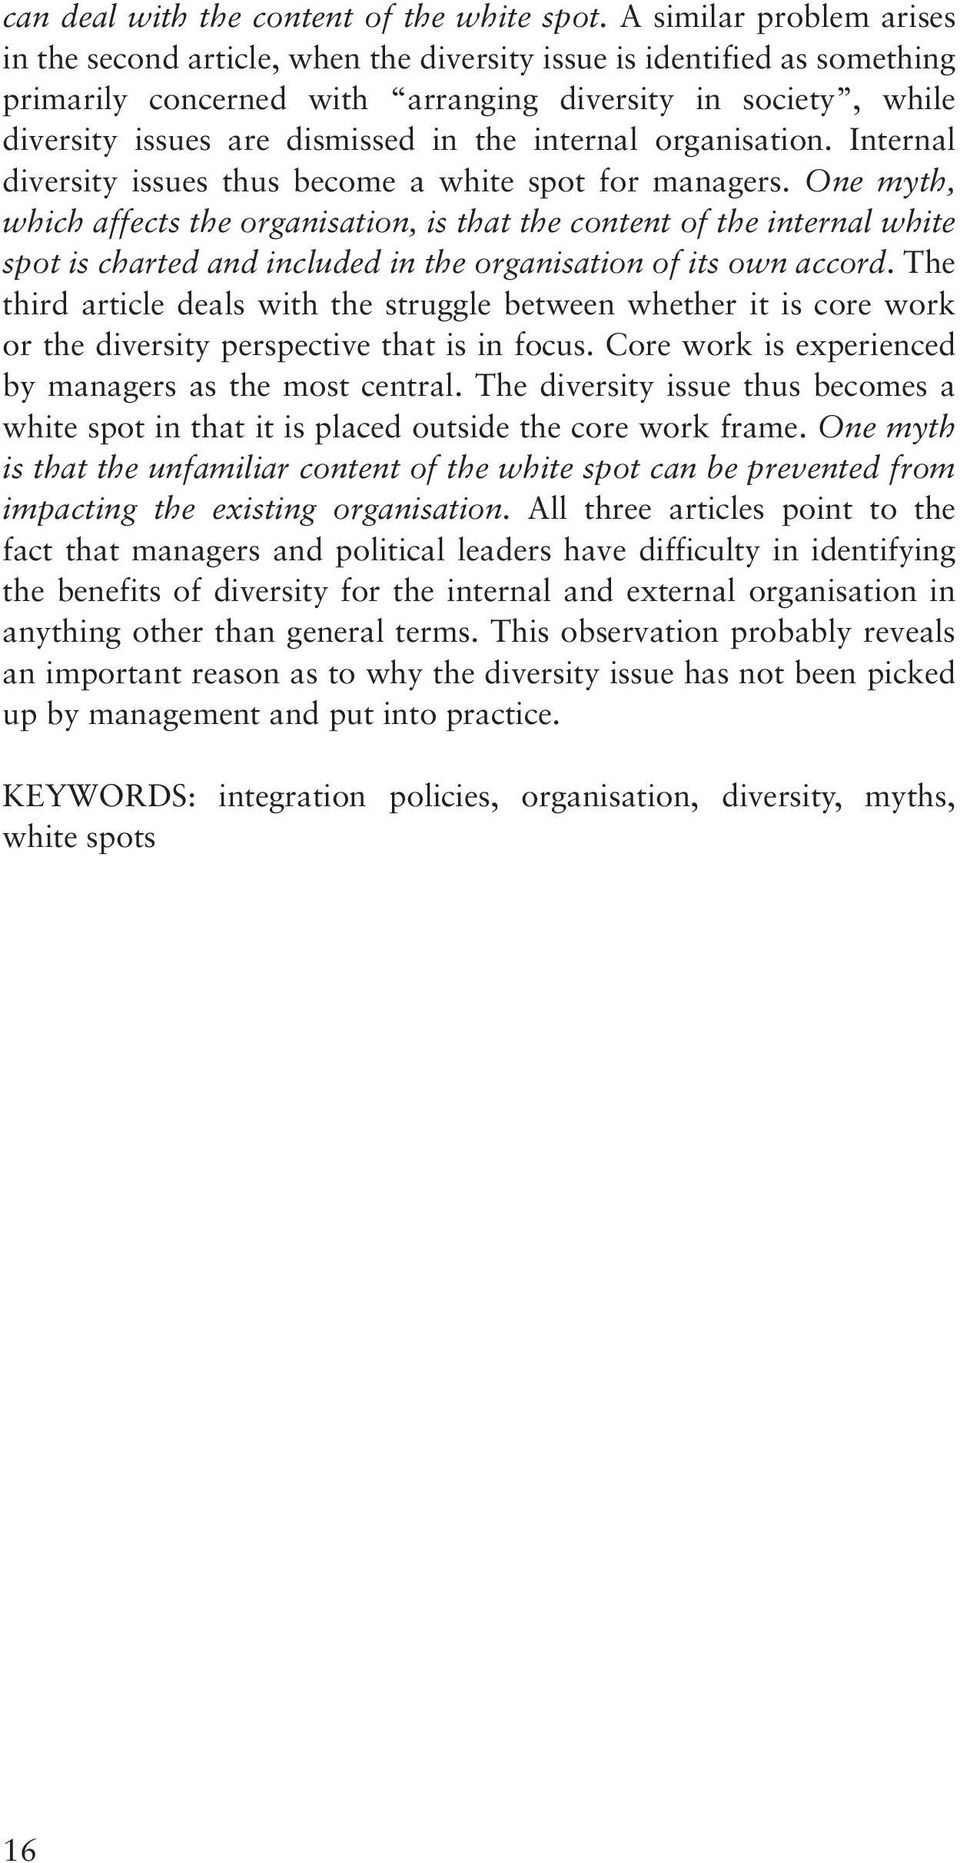 the internal organisation. Internal diversity issues thus become a white spot for managers.